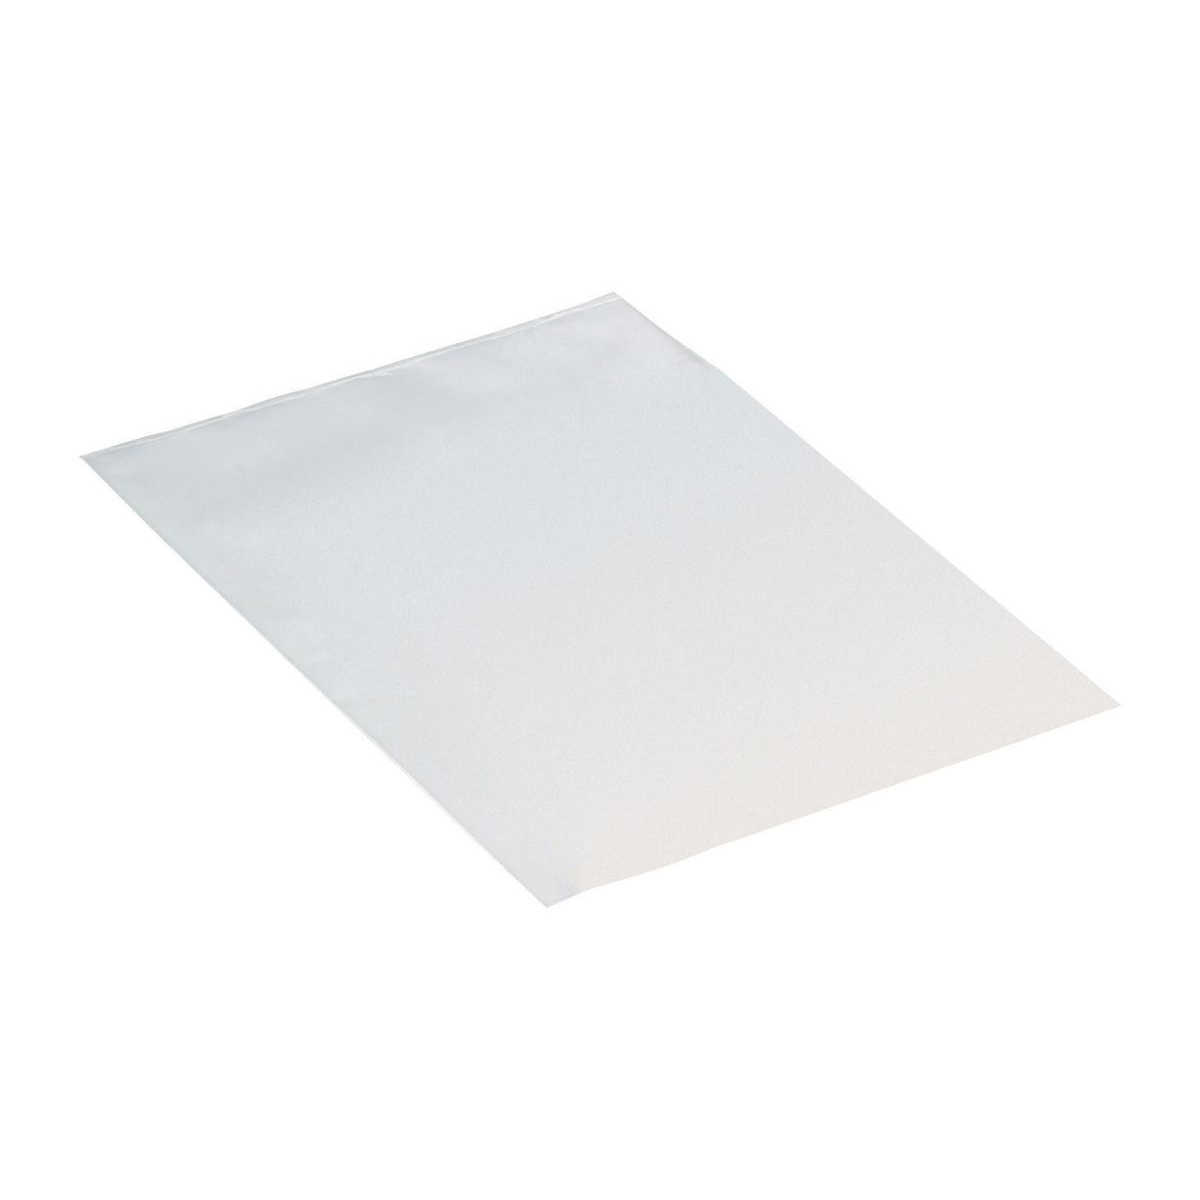 Polythene Bags 500x750mm 25 Micron Clear [Pack 500]